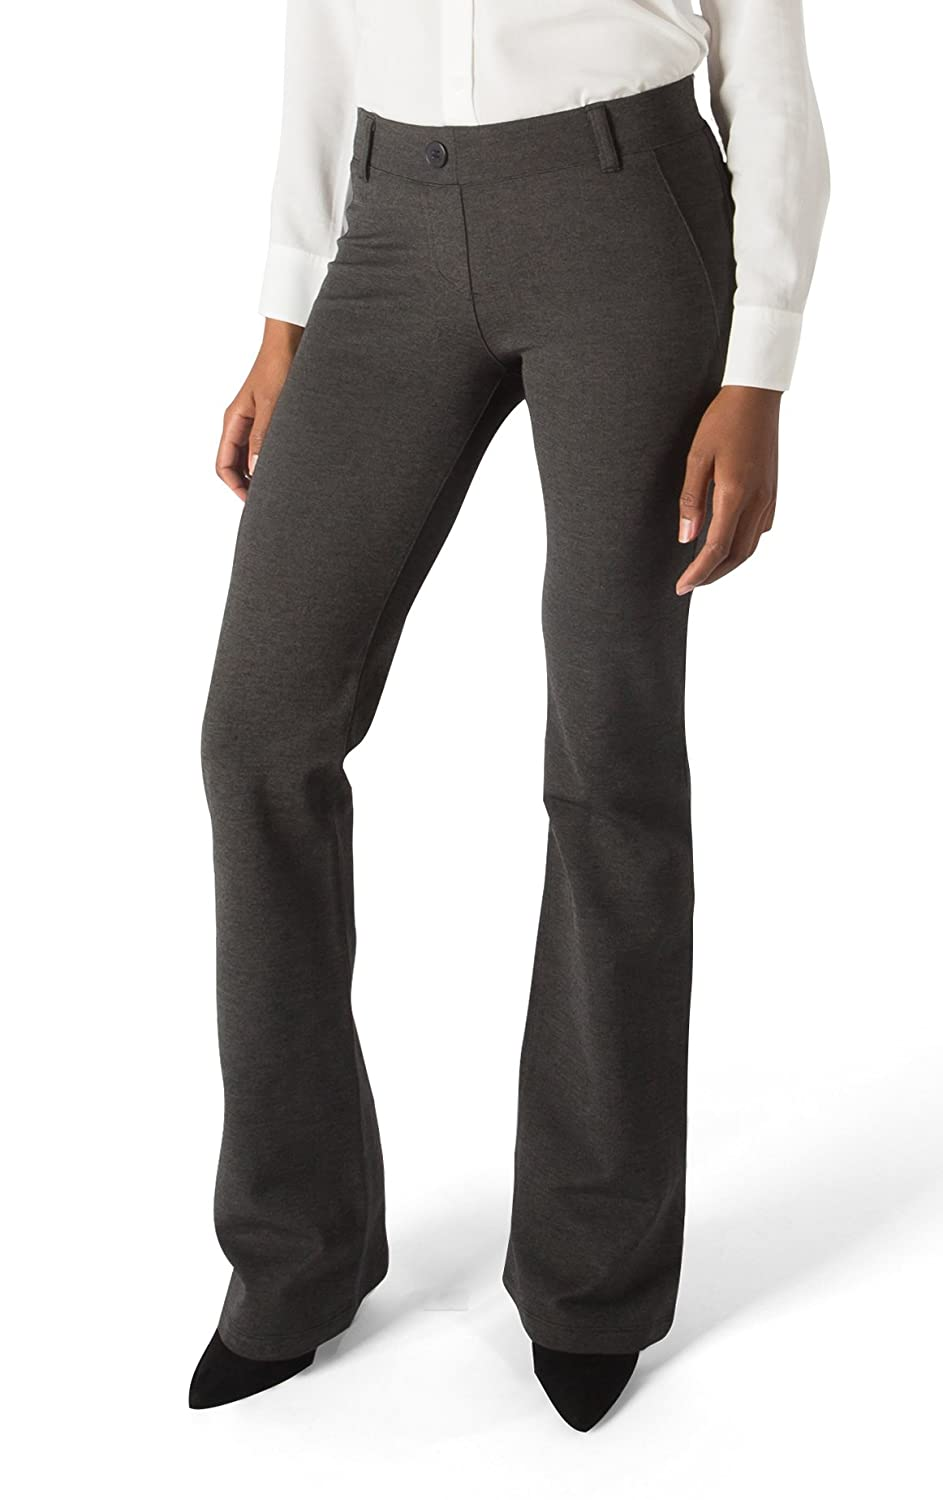 1df51c6a9bdae ... Shape, Washington Post, Fortune, Slate, WWD, Daily Mail and many more!  Executive style, yoga-pant comfort. Machine-washable. Belt loops, faux  zipper, ...